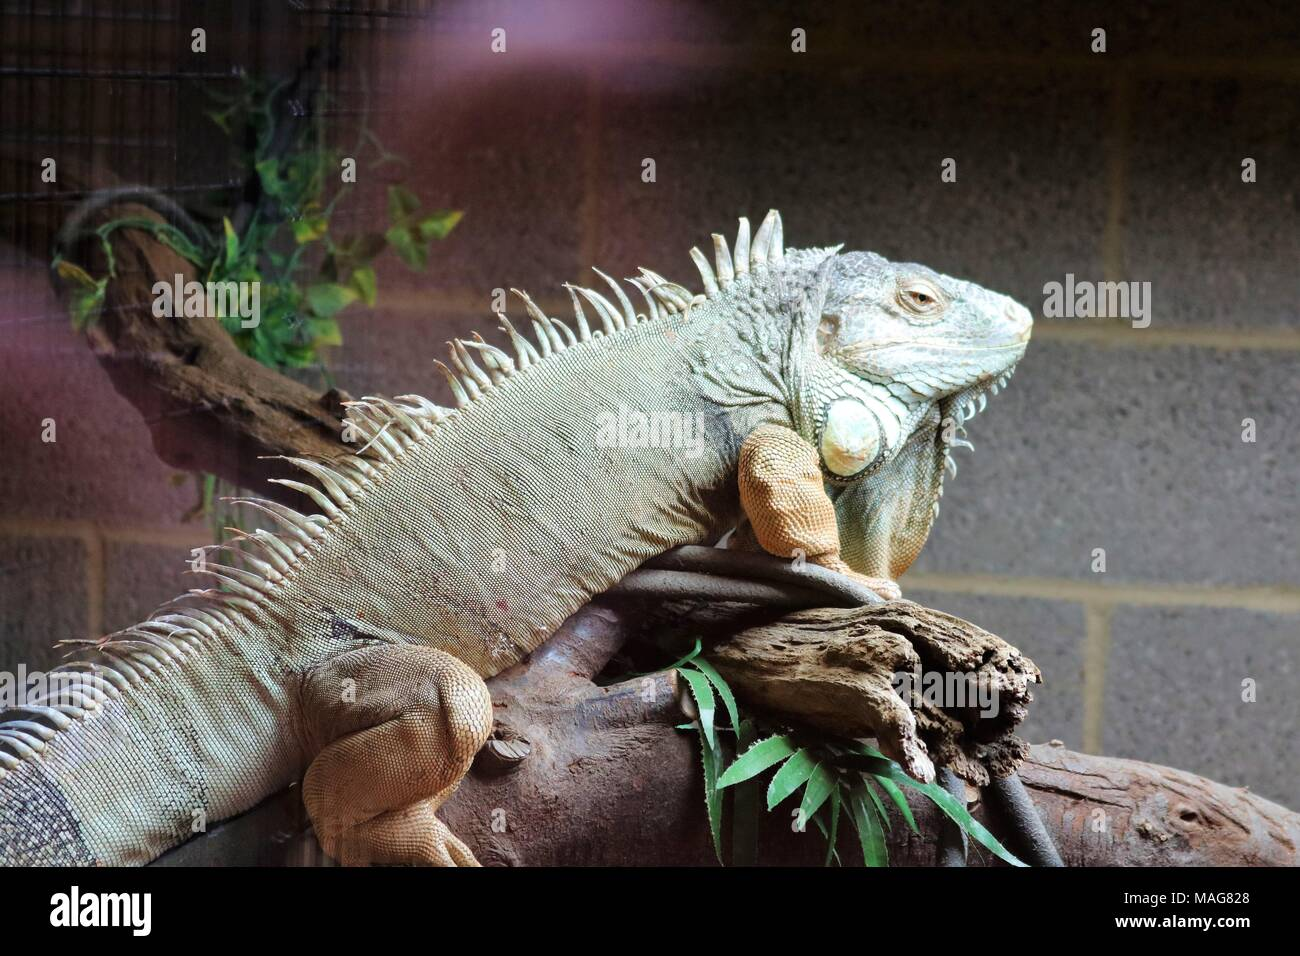 Iguana on a branch at a tourist attraction - Stock Image